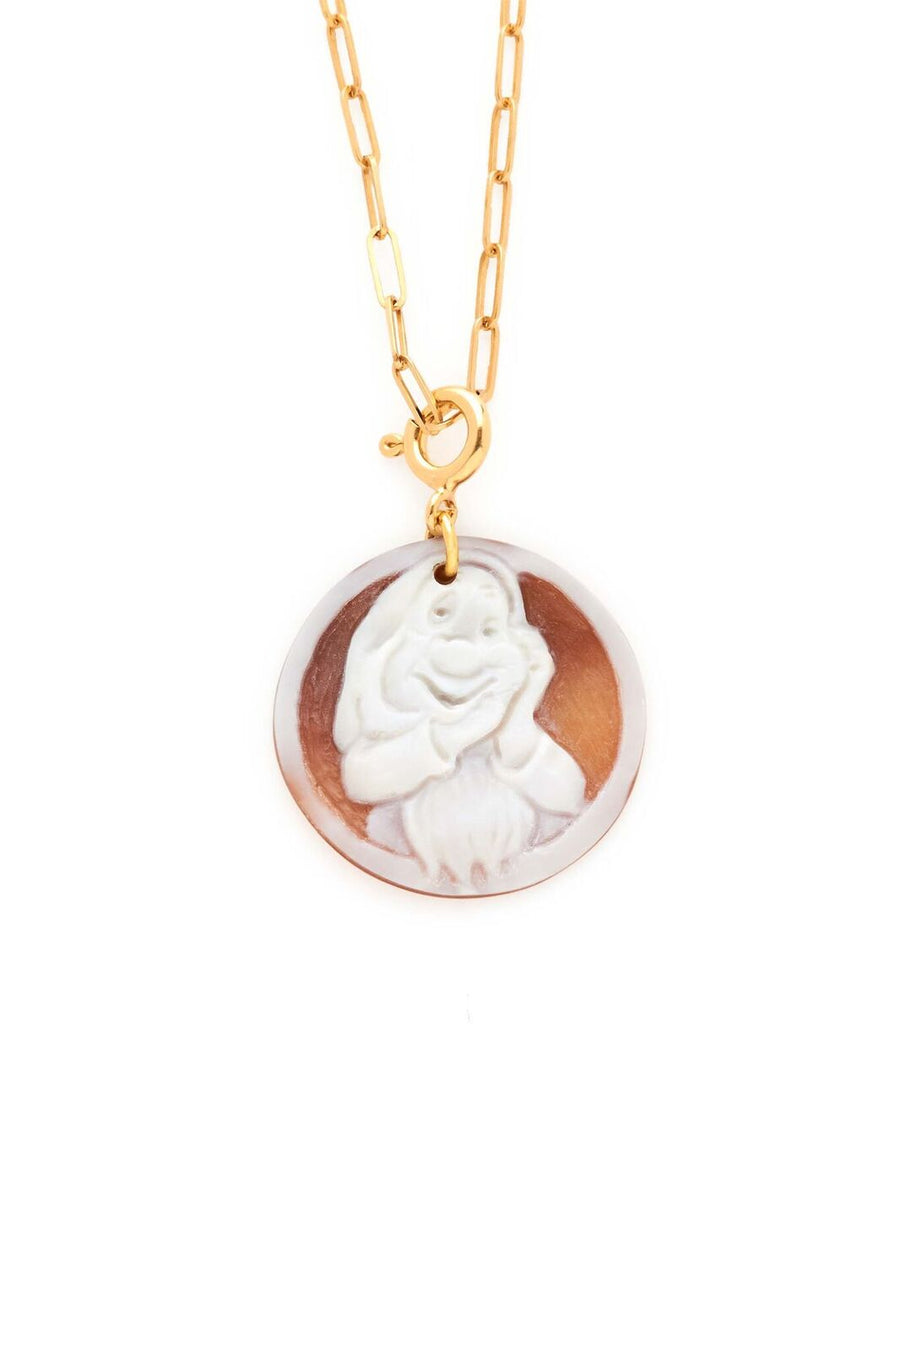 Sleepy Dwarf Small Cameo Pendant